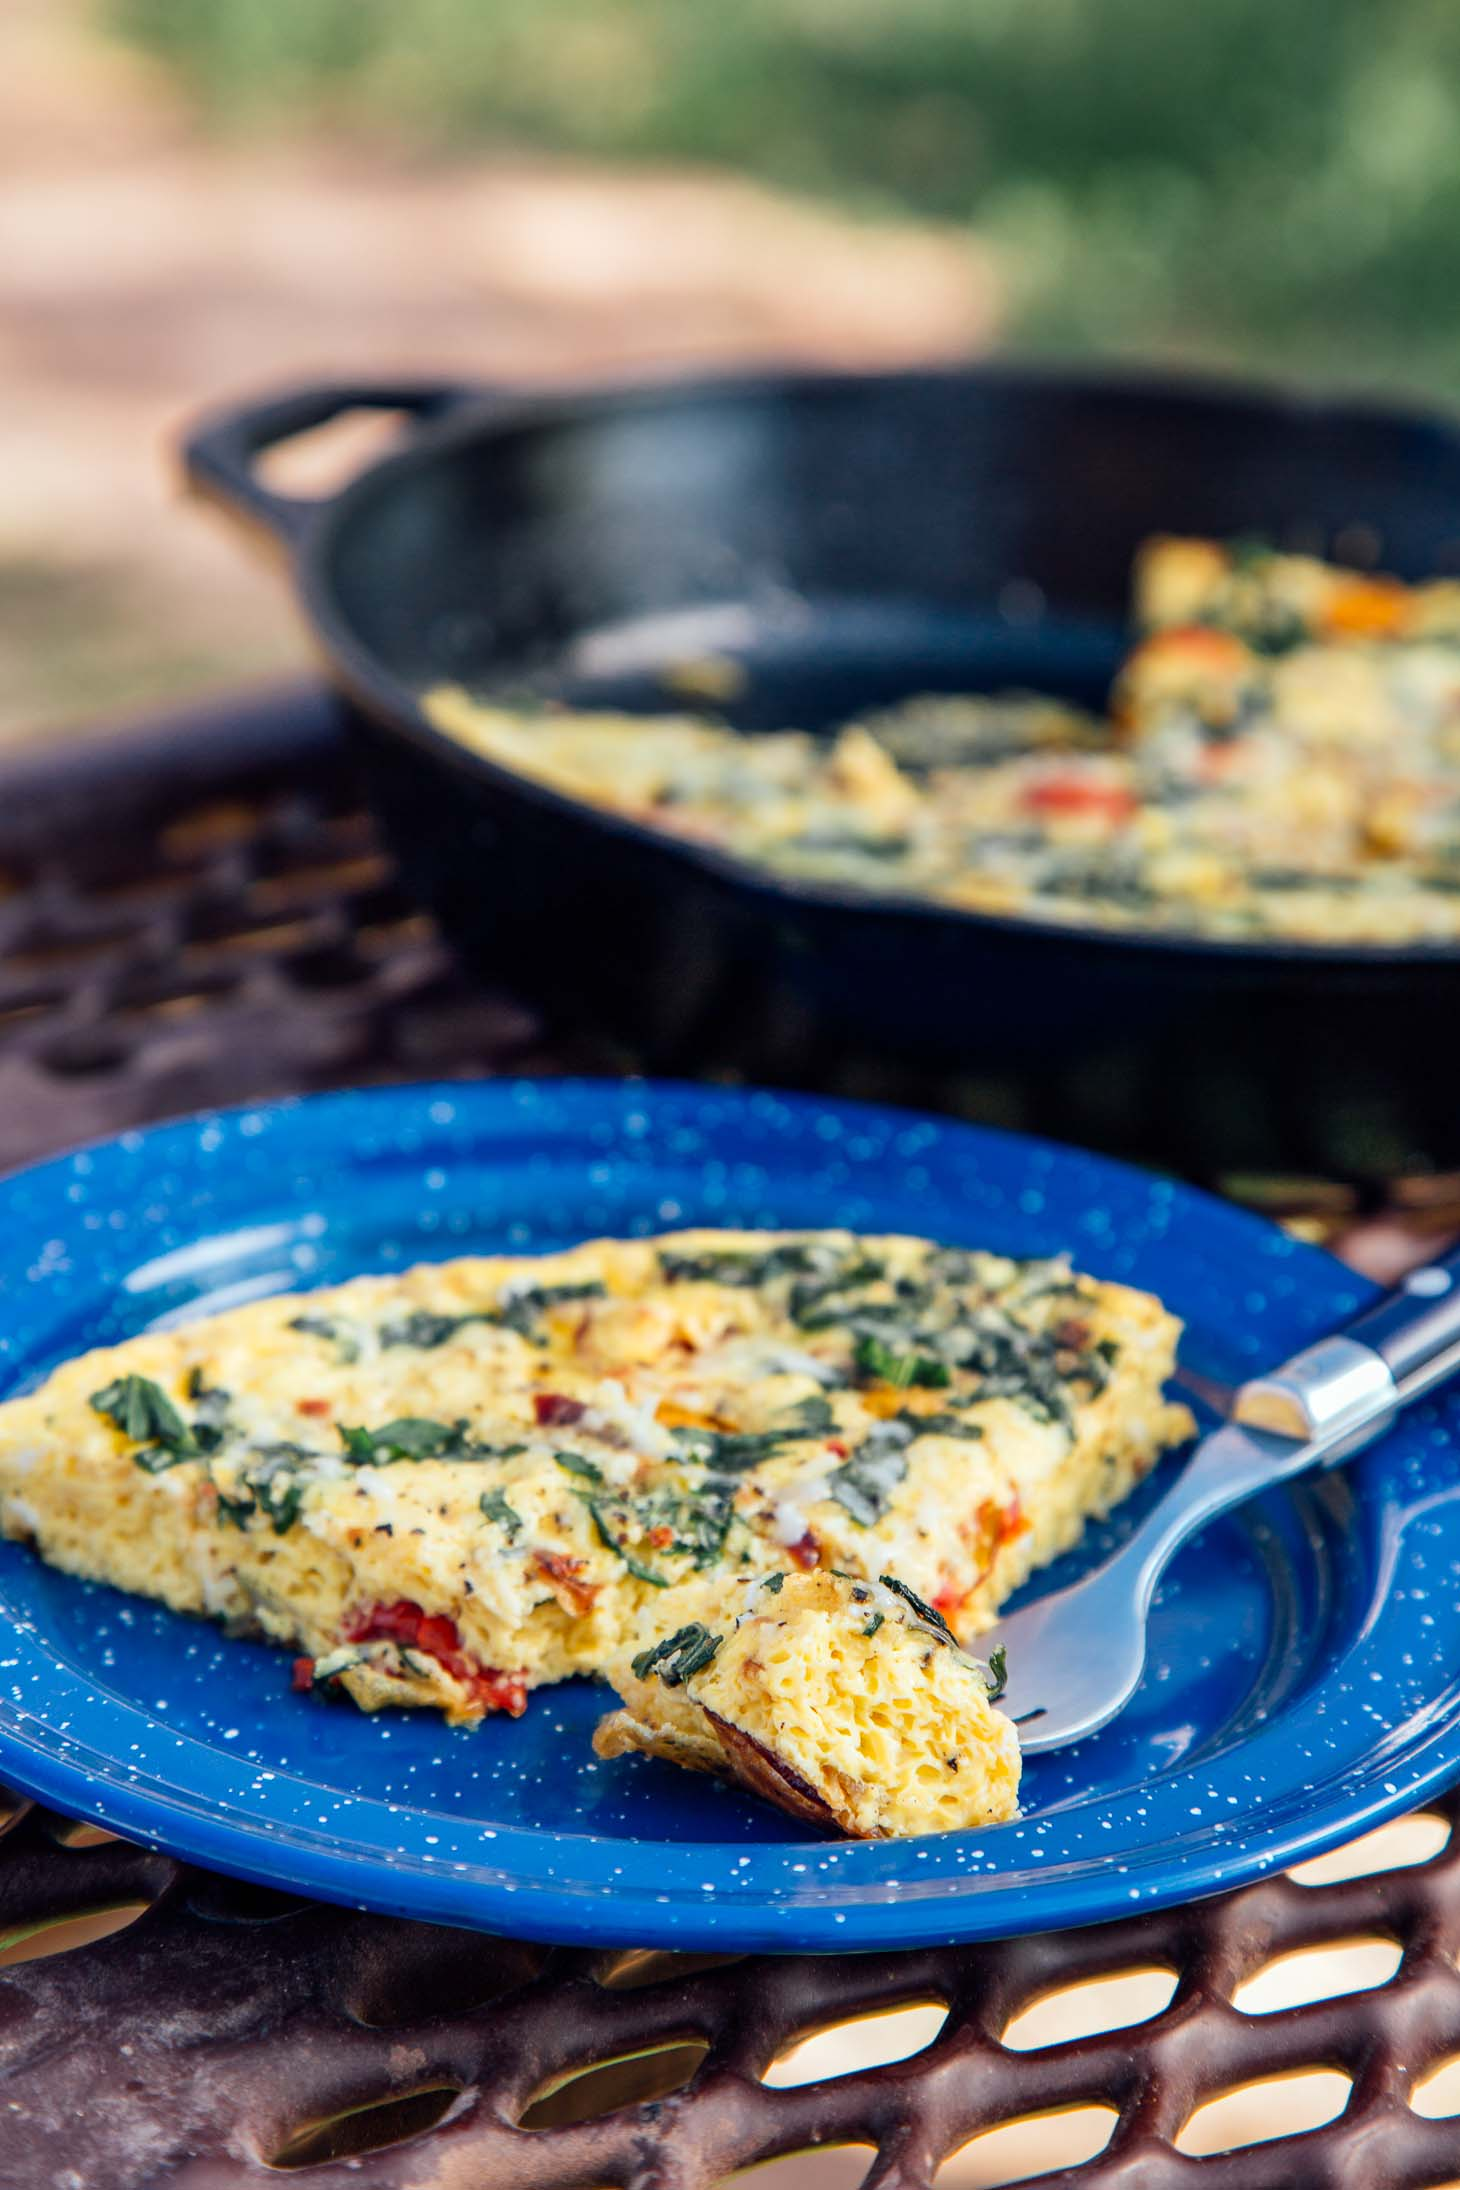 A slice of vegetable frittata on a blue plate on a camping table.